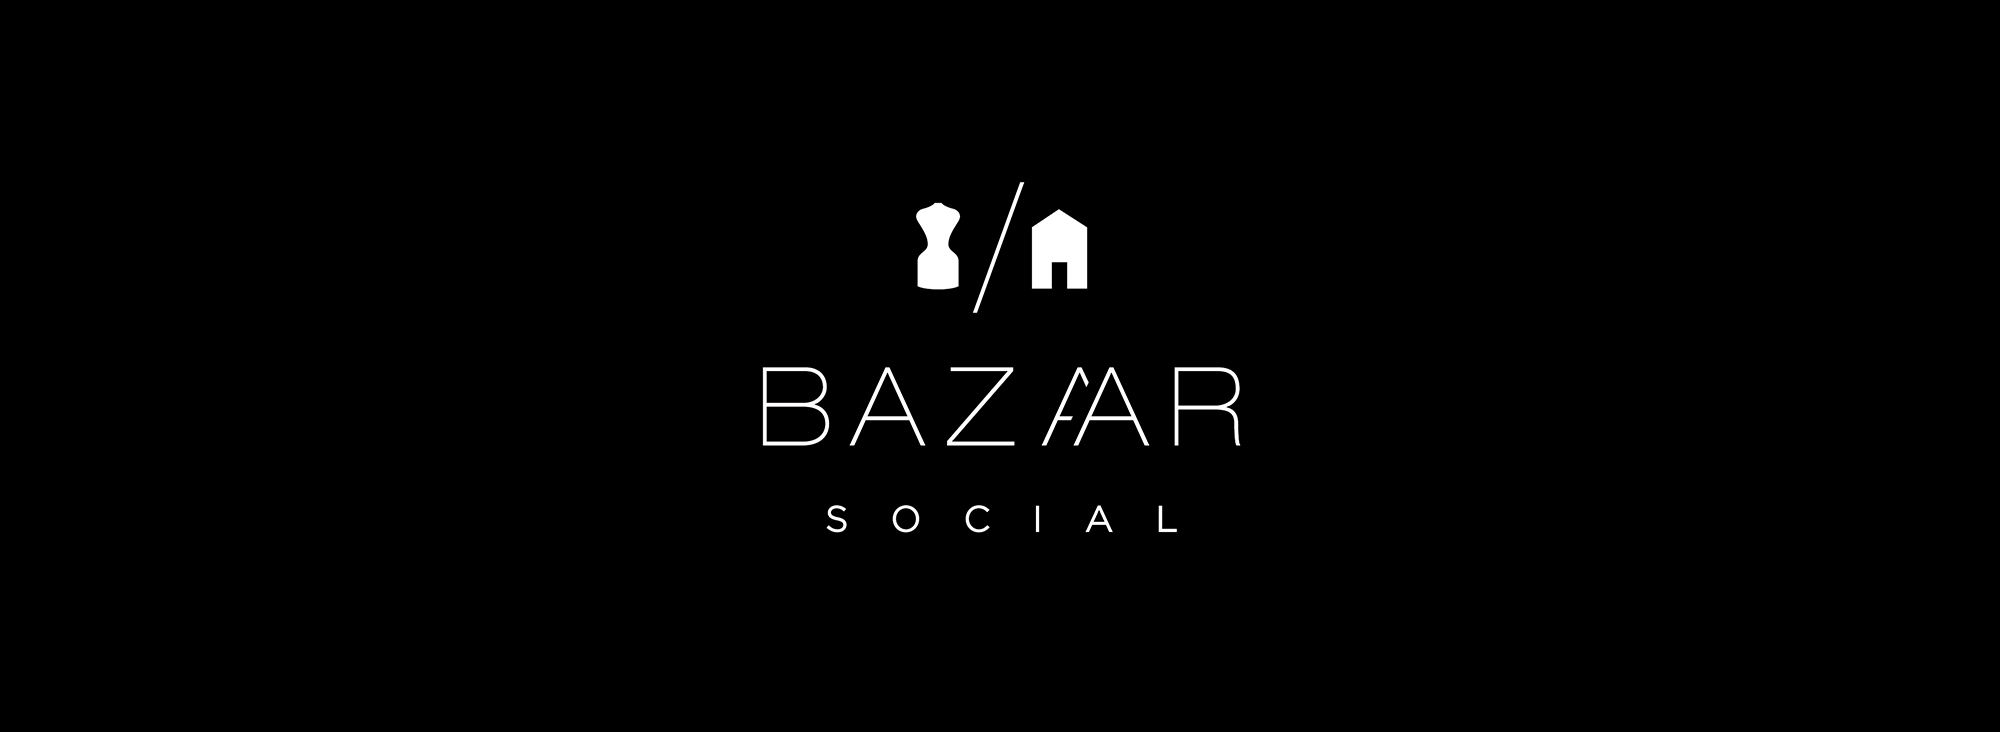 bazaar_logo reversed